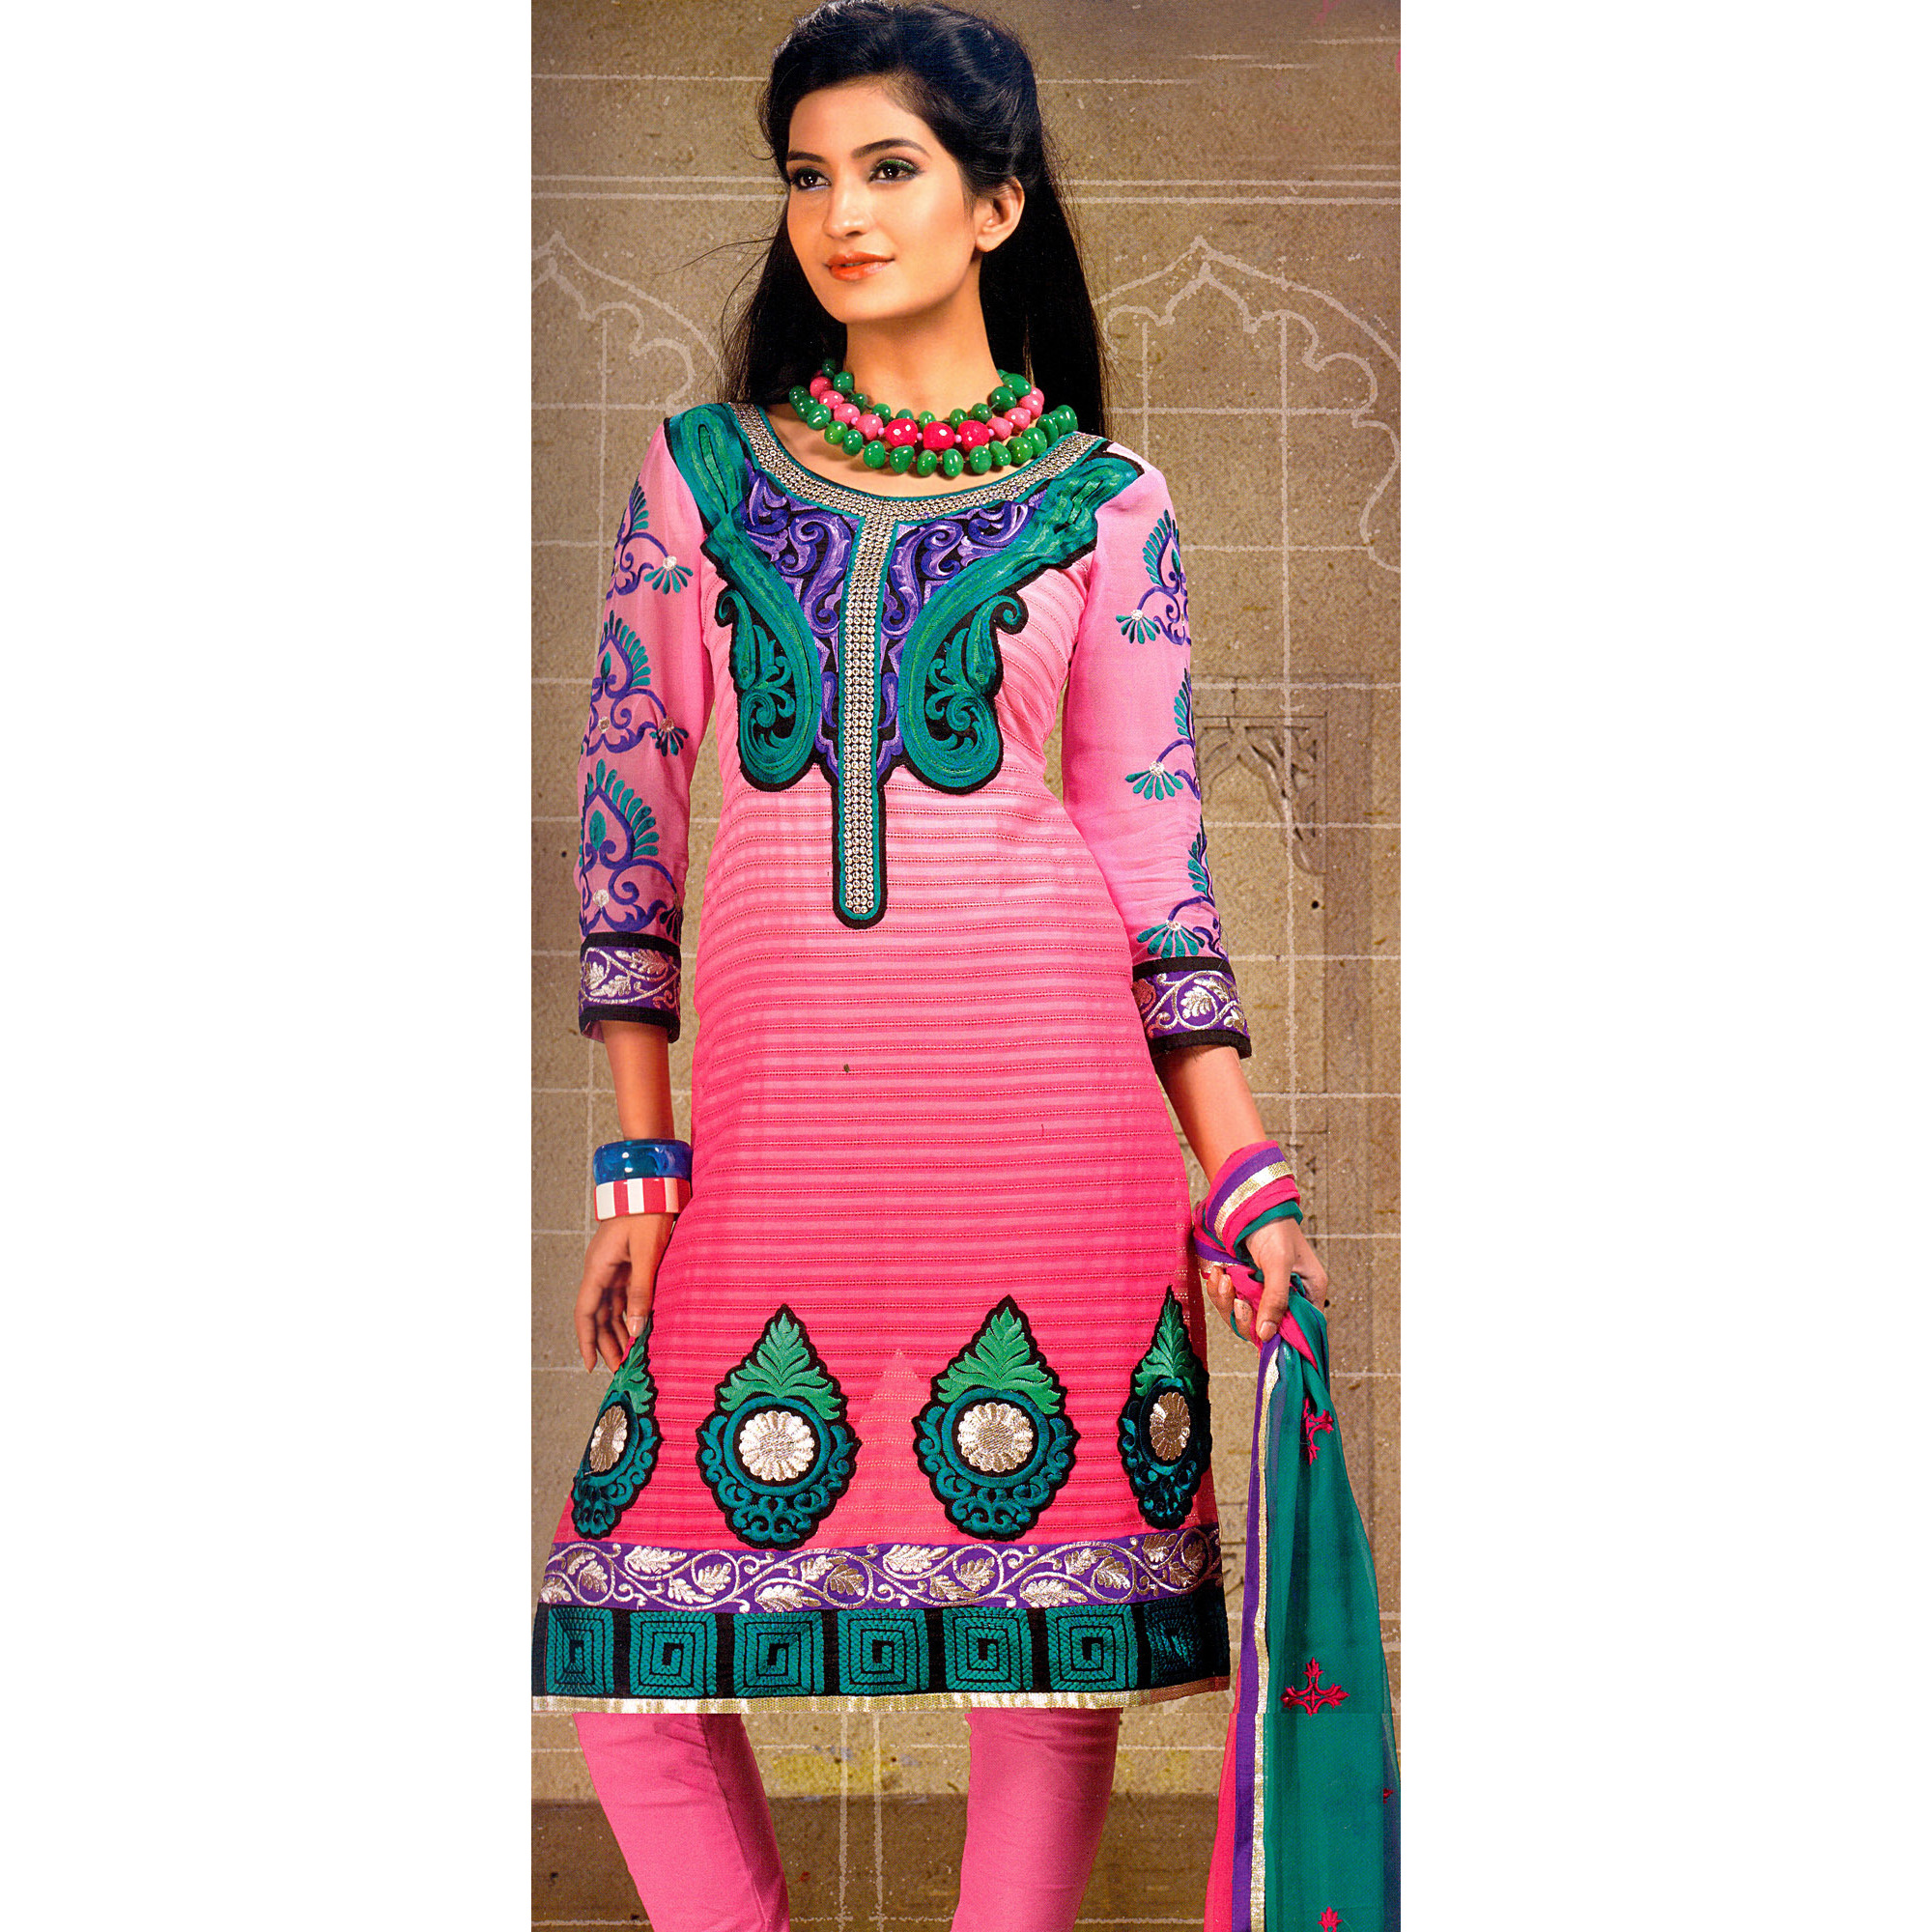 Morning Glory-Pink Choodidaar Kameez Suit with Crewel Embroidery on Neck and Patch Border